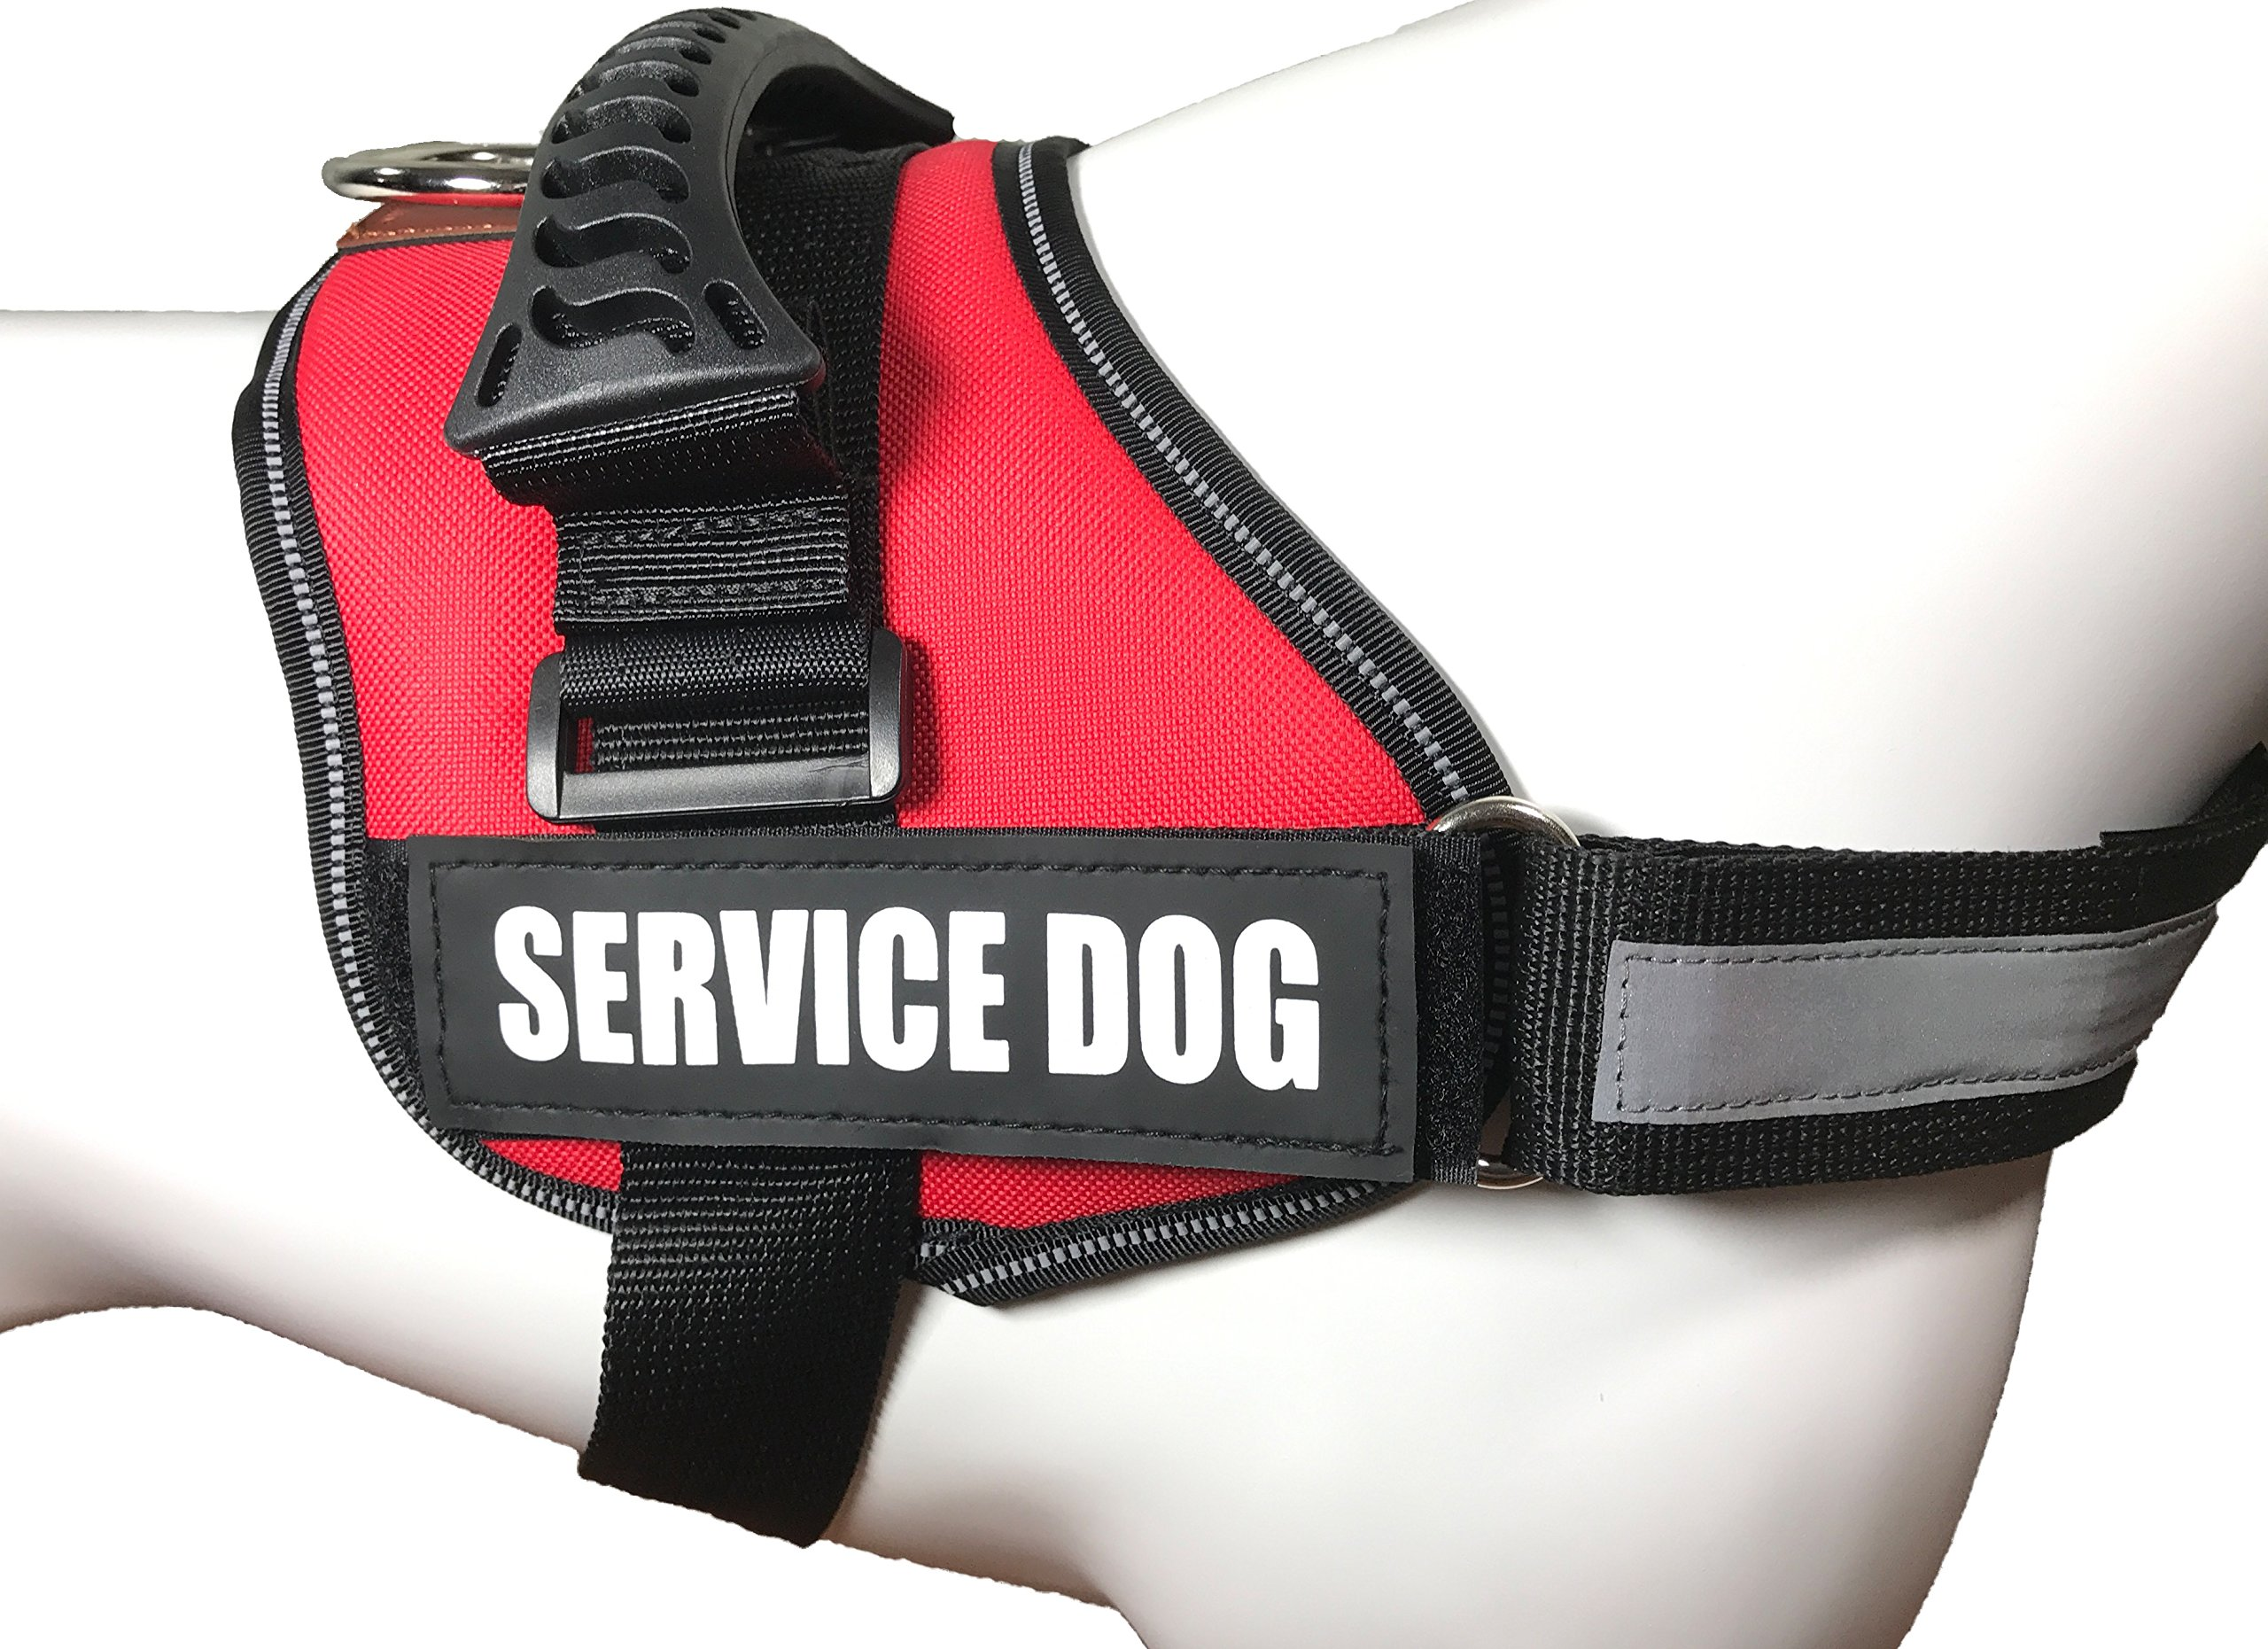 ALBCORP Reflective Service Dog Vest/Harness, Woven Polyester & Nylon, Comfy Soft Padding, Large, RED